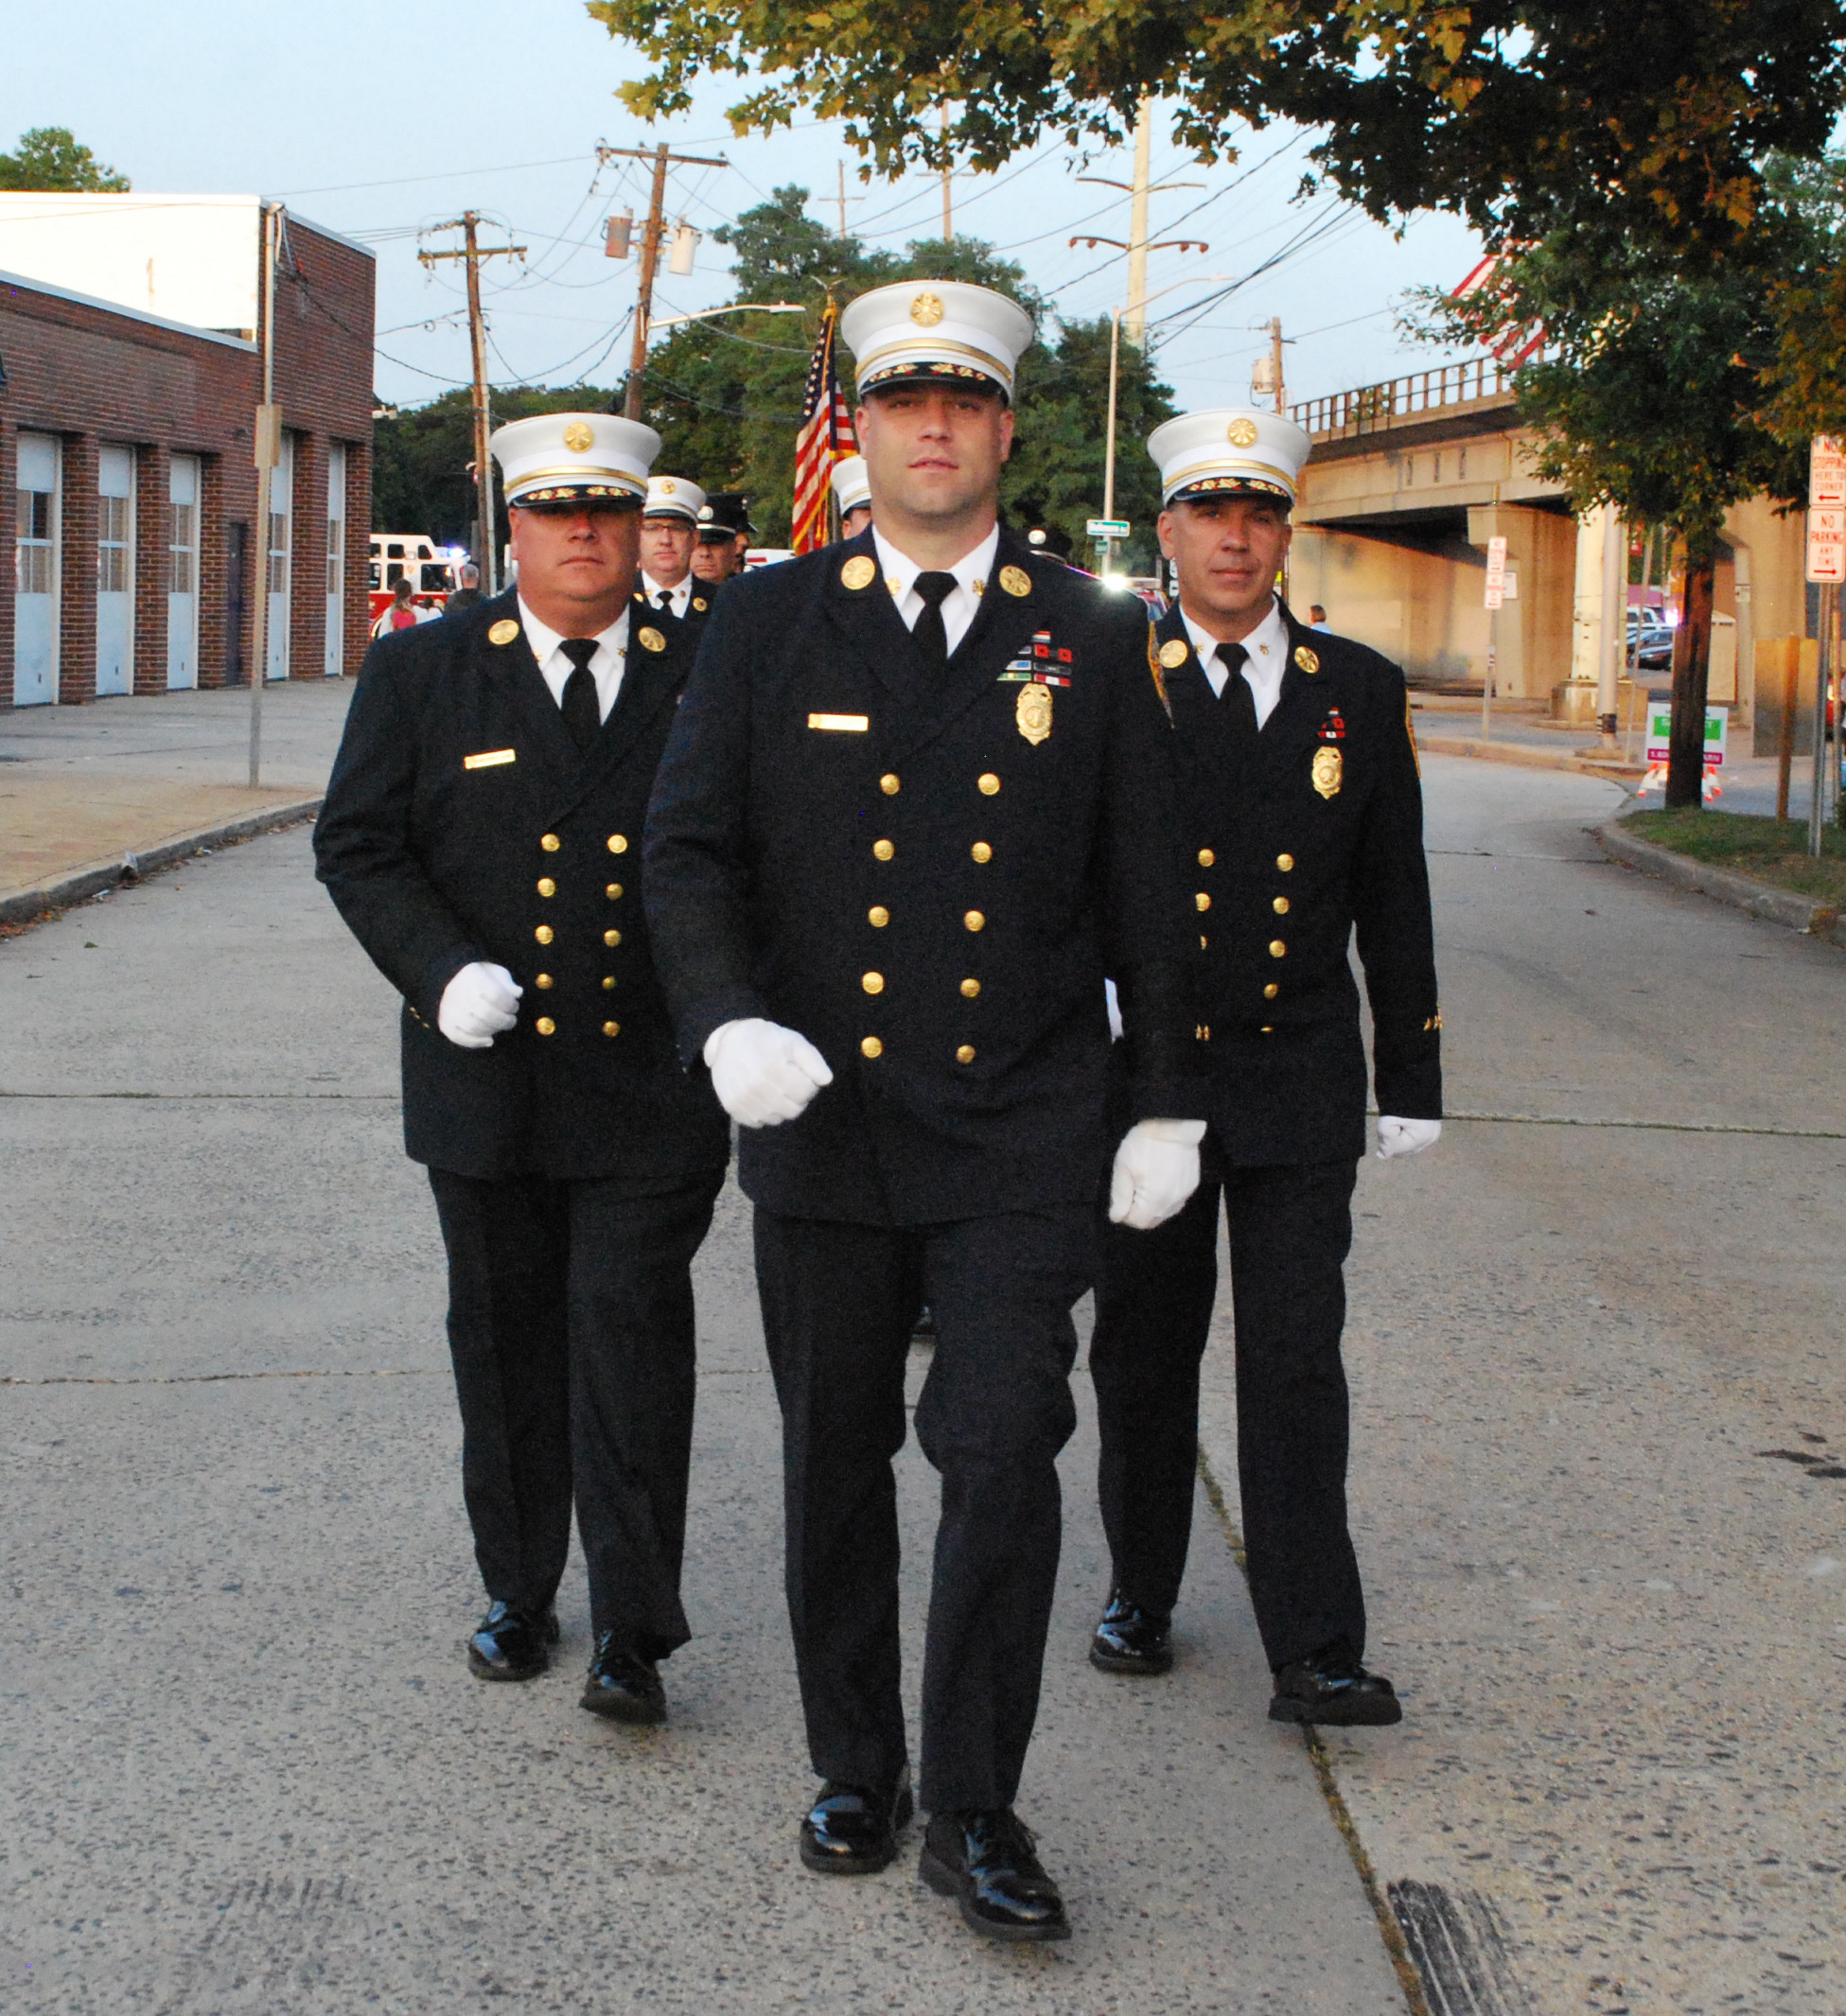 Chief Brian Ellensohn, left, First Assistant Chief Robert Presti Jr., and Second Assistant Chief Chris Fasano, all of the North Merrick Fire Department, marched down the streets of Bellmore during the 6th Battalion's annual Parade.